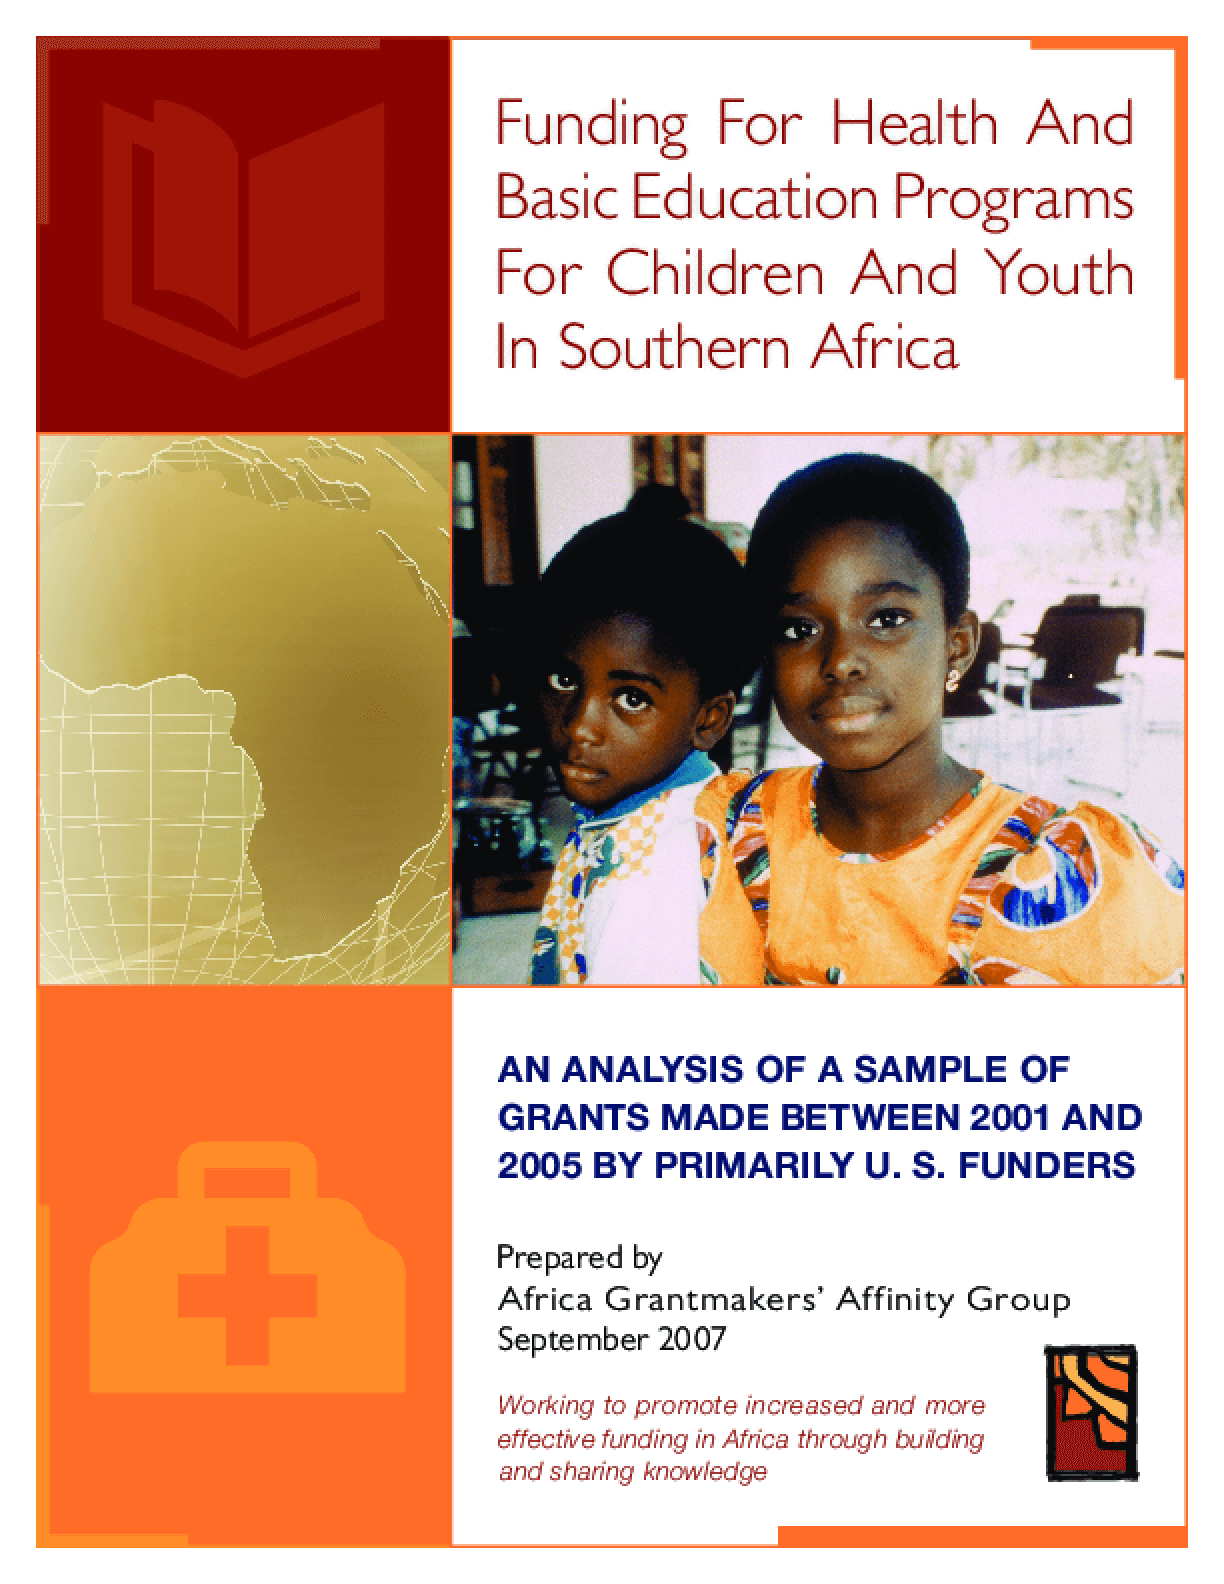 Funding for Health and Basic Education Programs for Children and Youth in Southern Africa: An Analysis of a Sample of Grants Made Between 2001 and 2005 By Primarily U.S. Funders